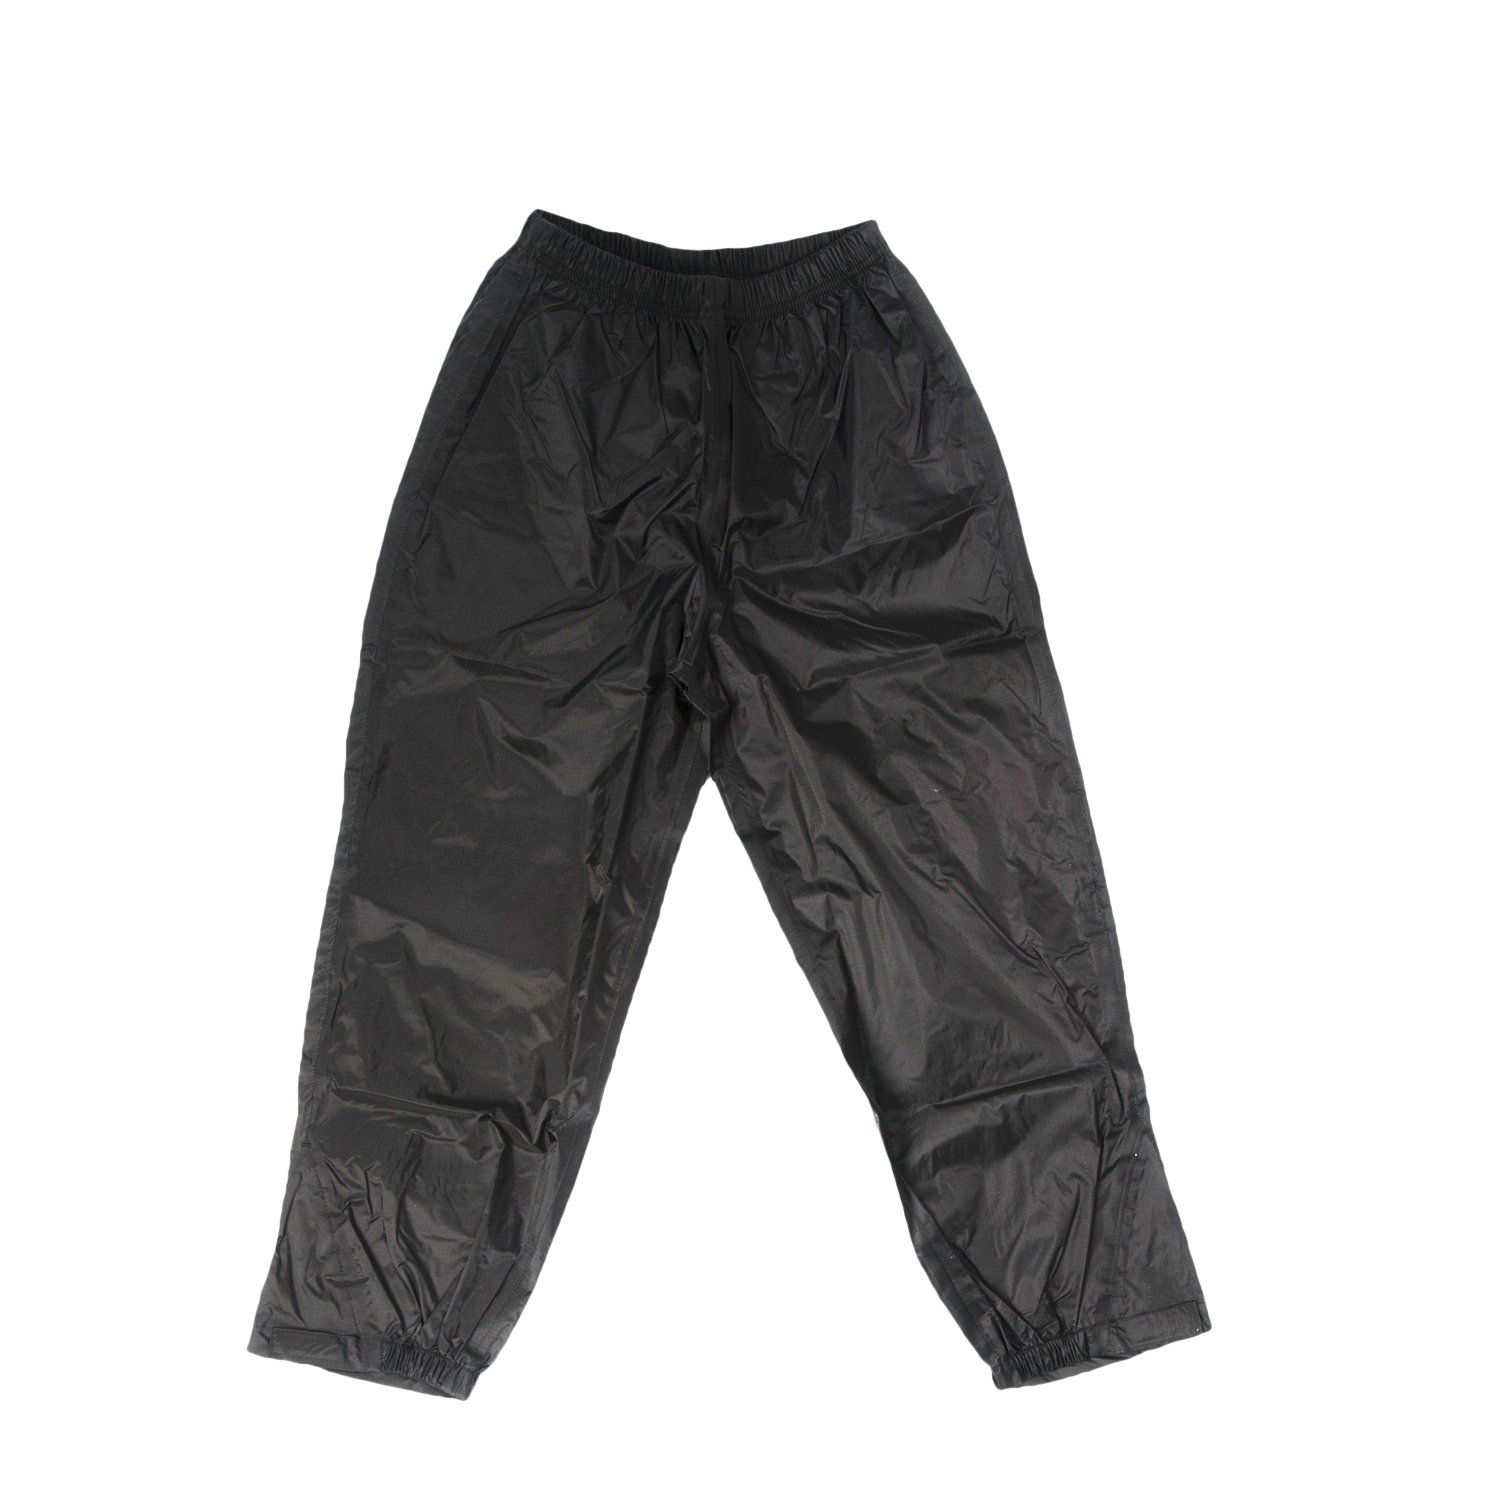 Tuffo Big Boys' Adventure Rain Pants RPB007 Black 10